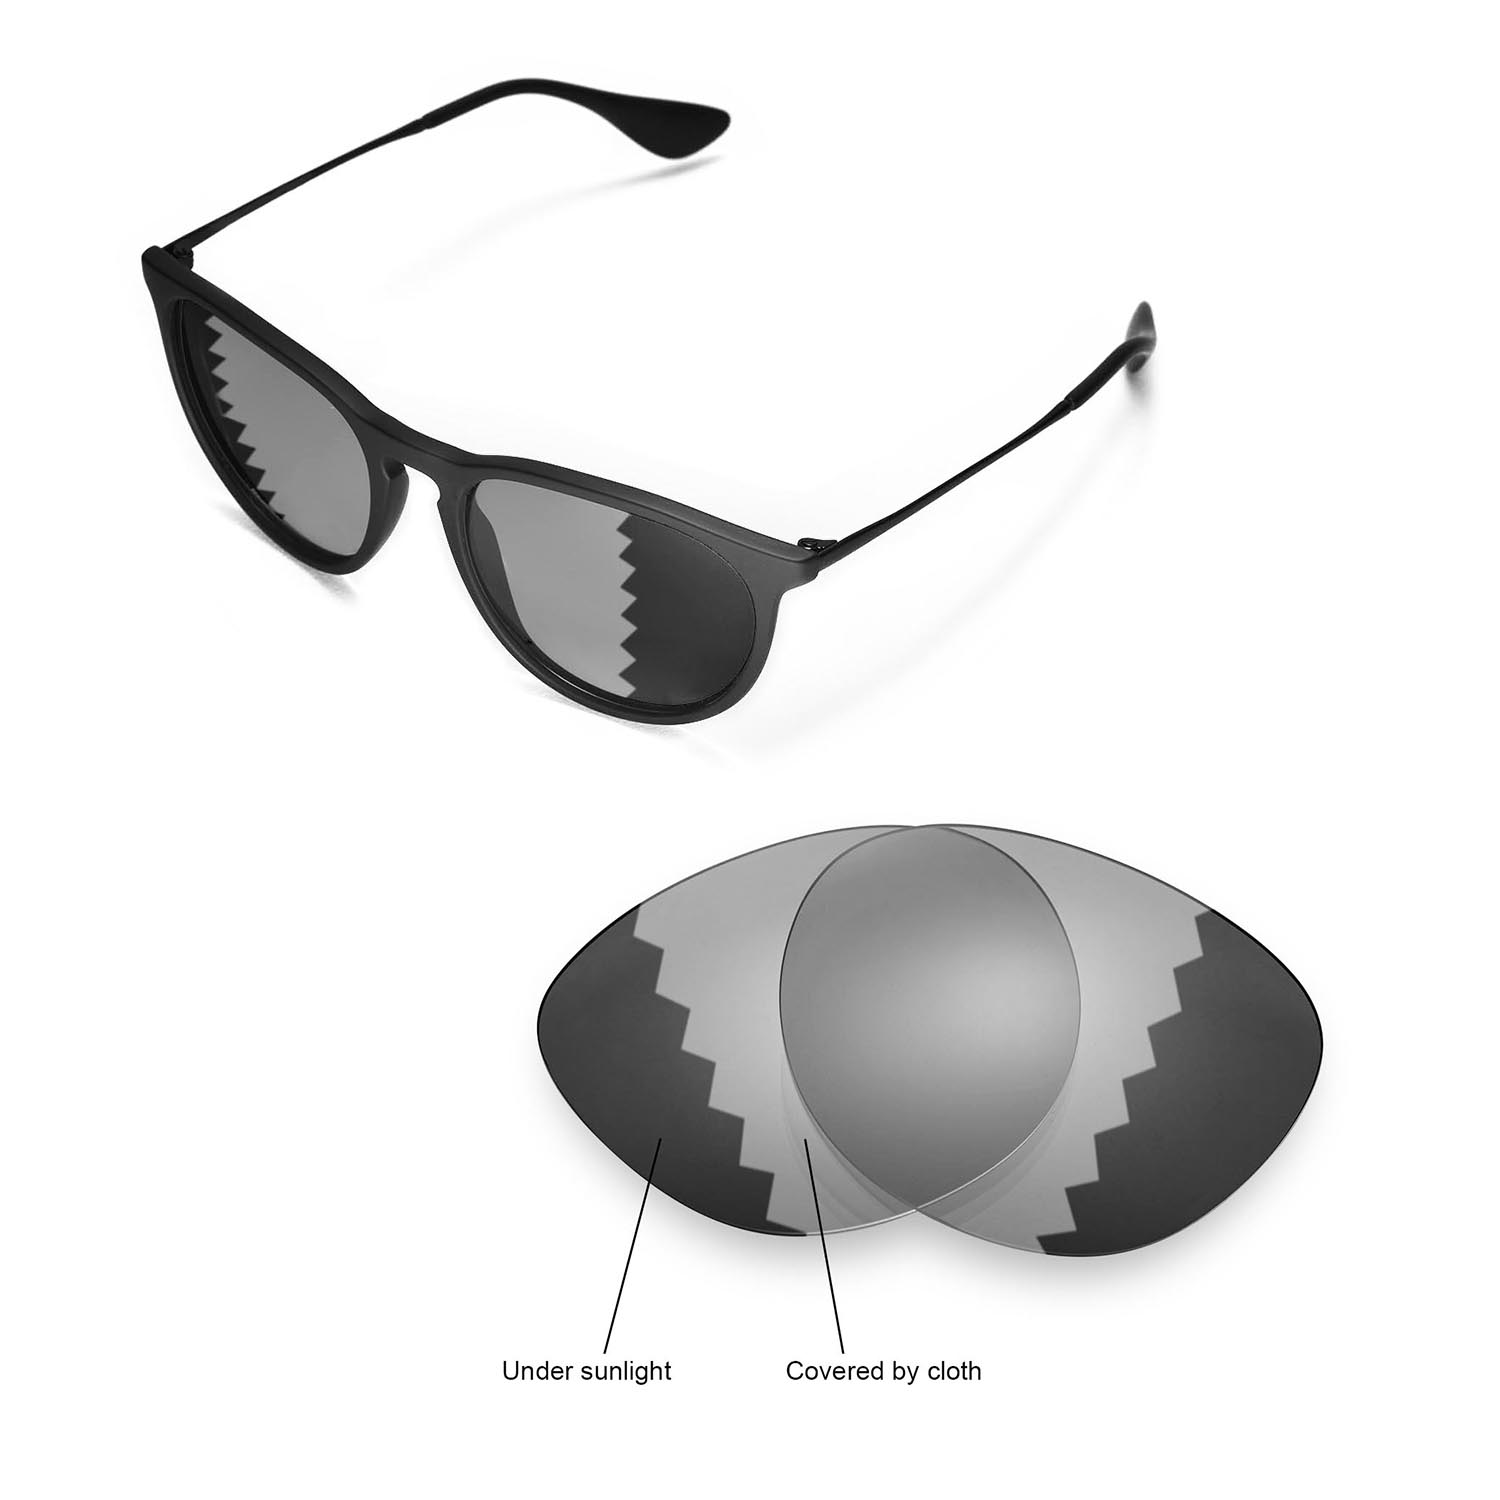 Details about New Walleva Polarized Transition Lenses For Ray-Ban Erika  RB4171 54m Sunglasses 06369f70f0